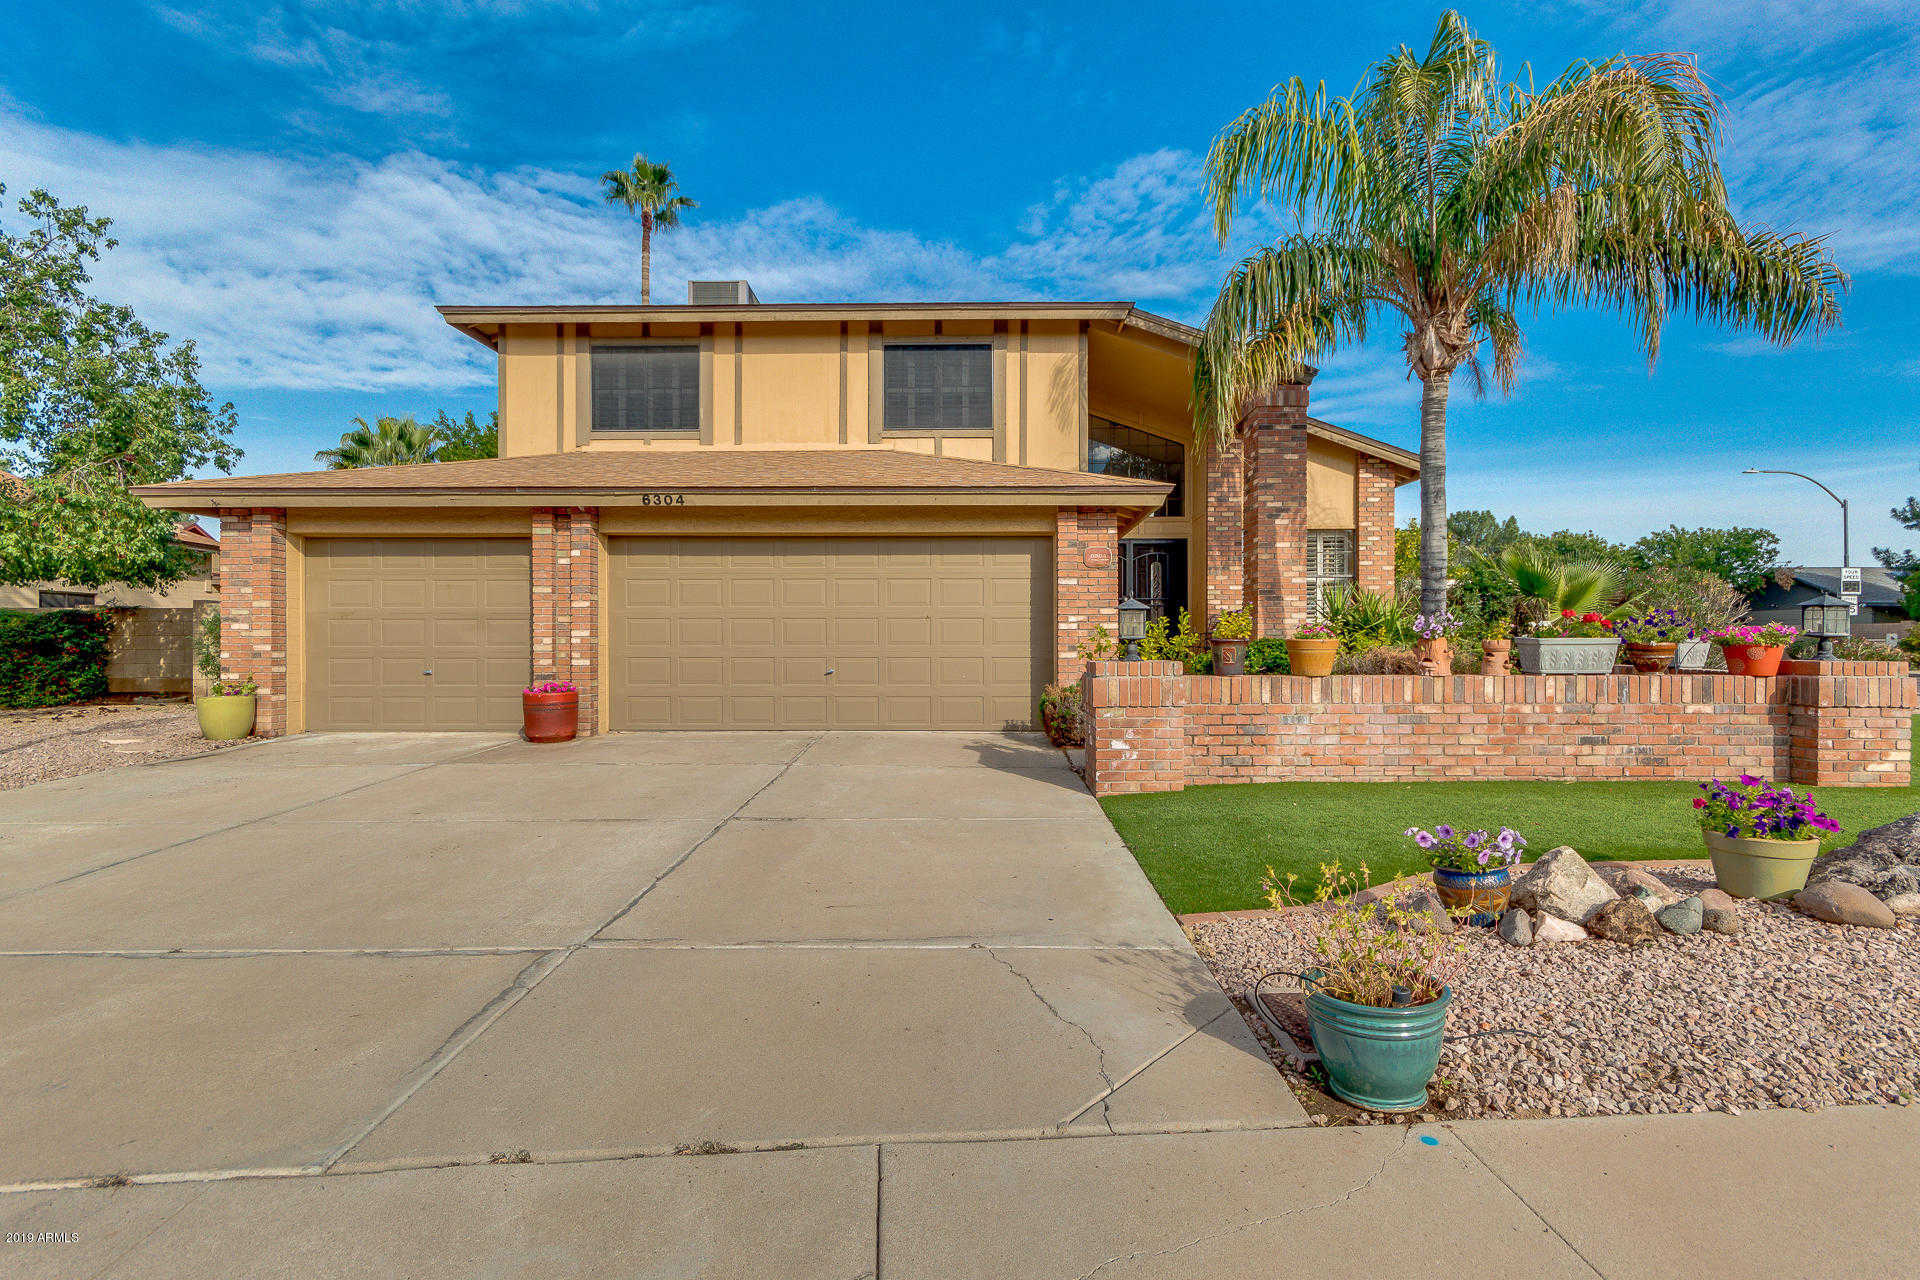 $349,900 - 4Br/3Ba - Home for Sale in Copperwood Unit 5 Lot 441-568, Glendale